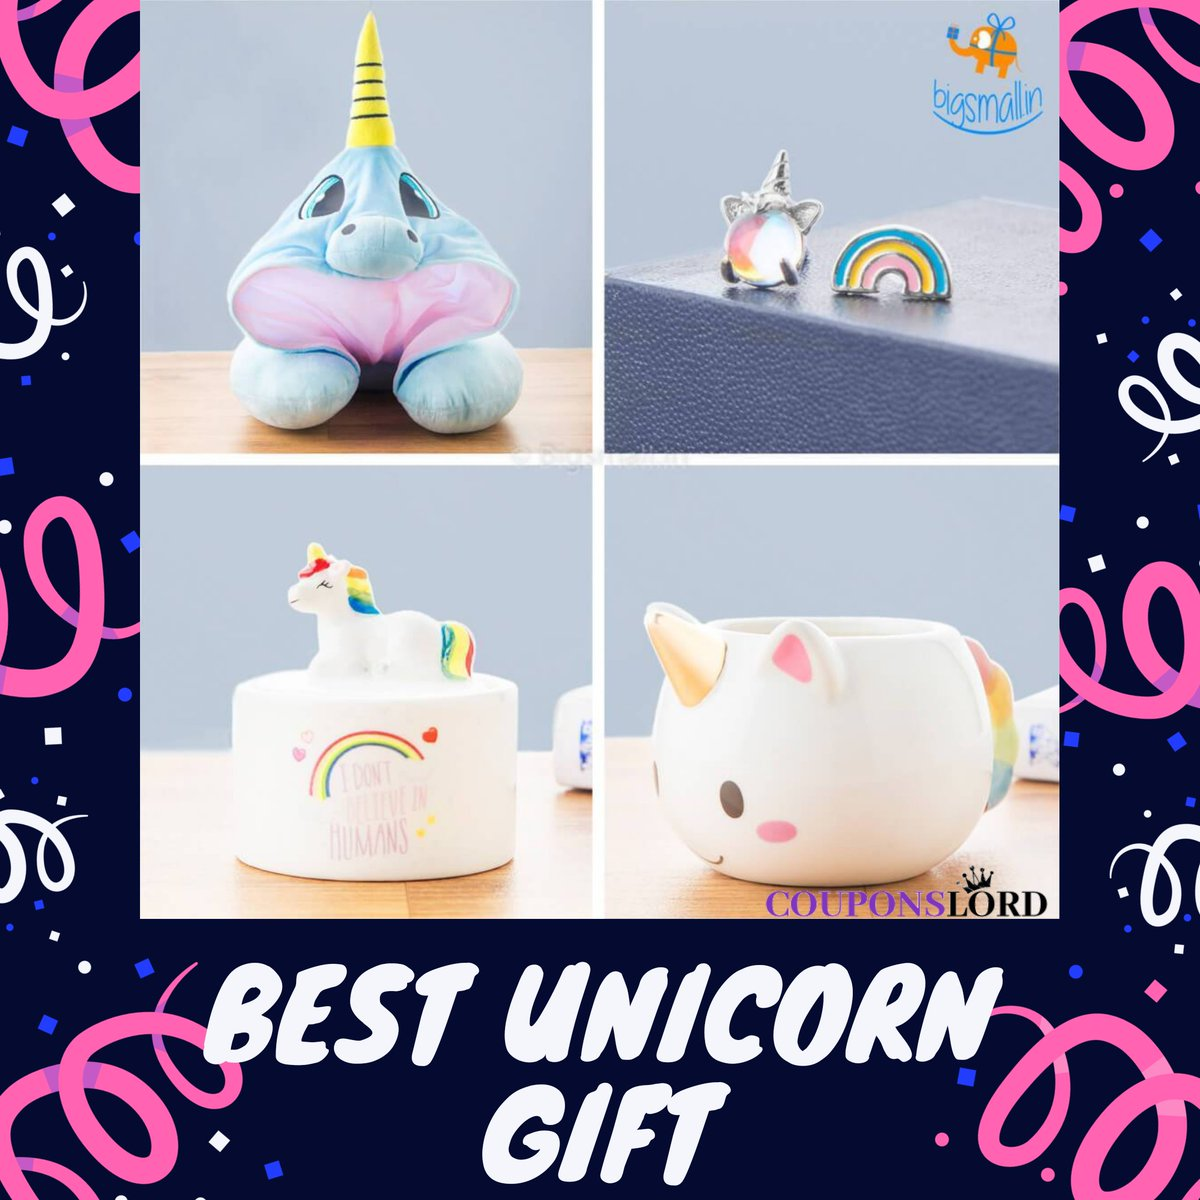 👉Follow @couponslord for more exciting Big Small Coupons & deals. Also EARN CouponsLord Cashback offers on each order  🔥Get 4% cashback from Couponslord 🔥  Link : https://t.co/PLW8kjfiPy  #gift #unicorn #ad #Offers #onlineshop #shopping #saving #coupons #dealsandsteals #Deals https://t.co/CrMezTtZ74